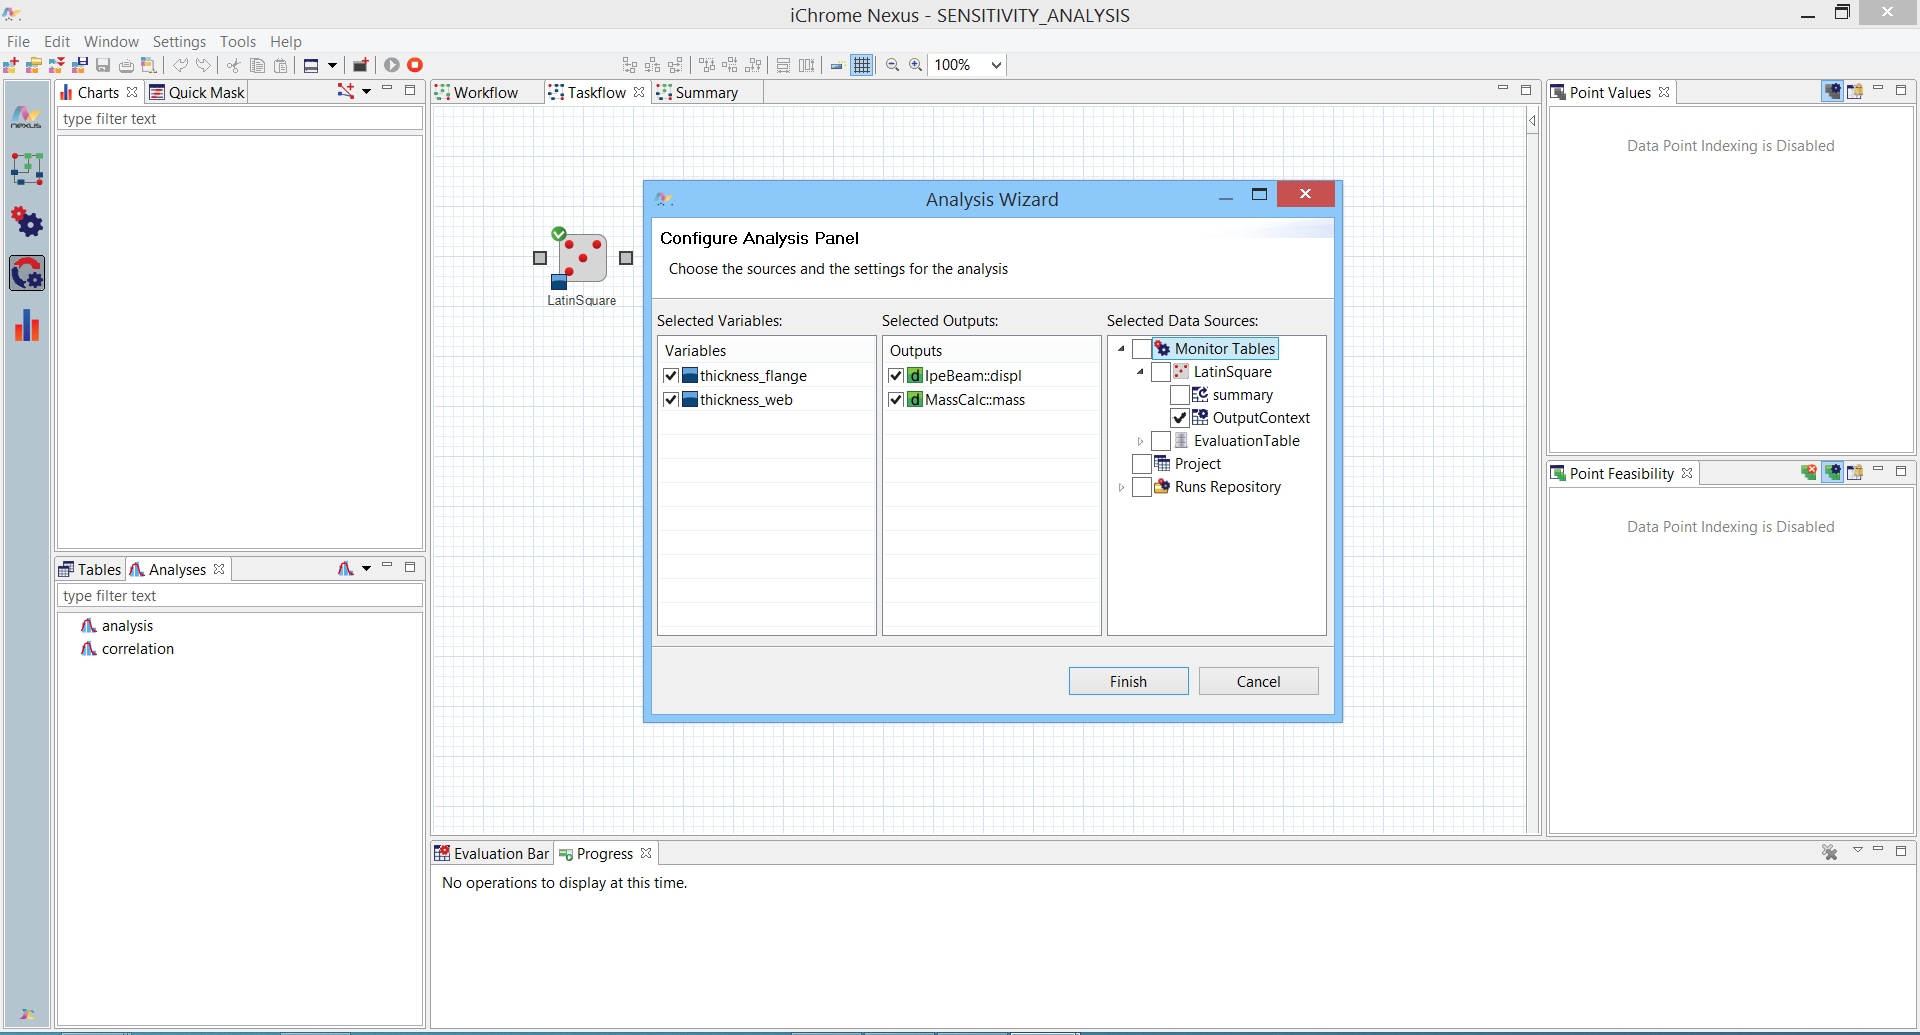 Correlation analysis tool in Nexus Design Explorer